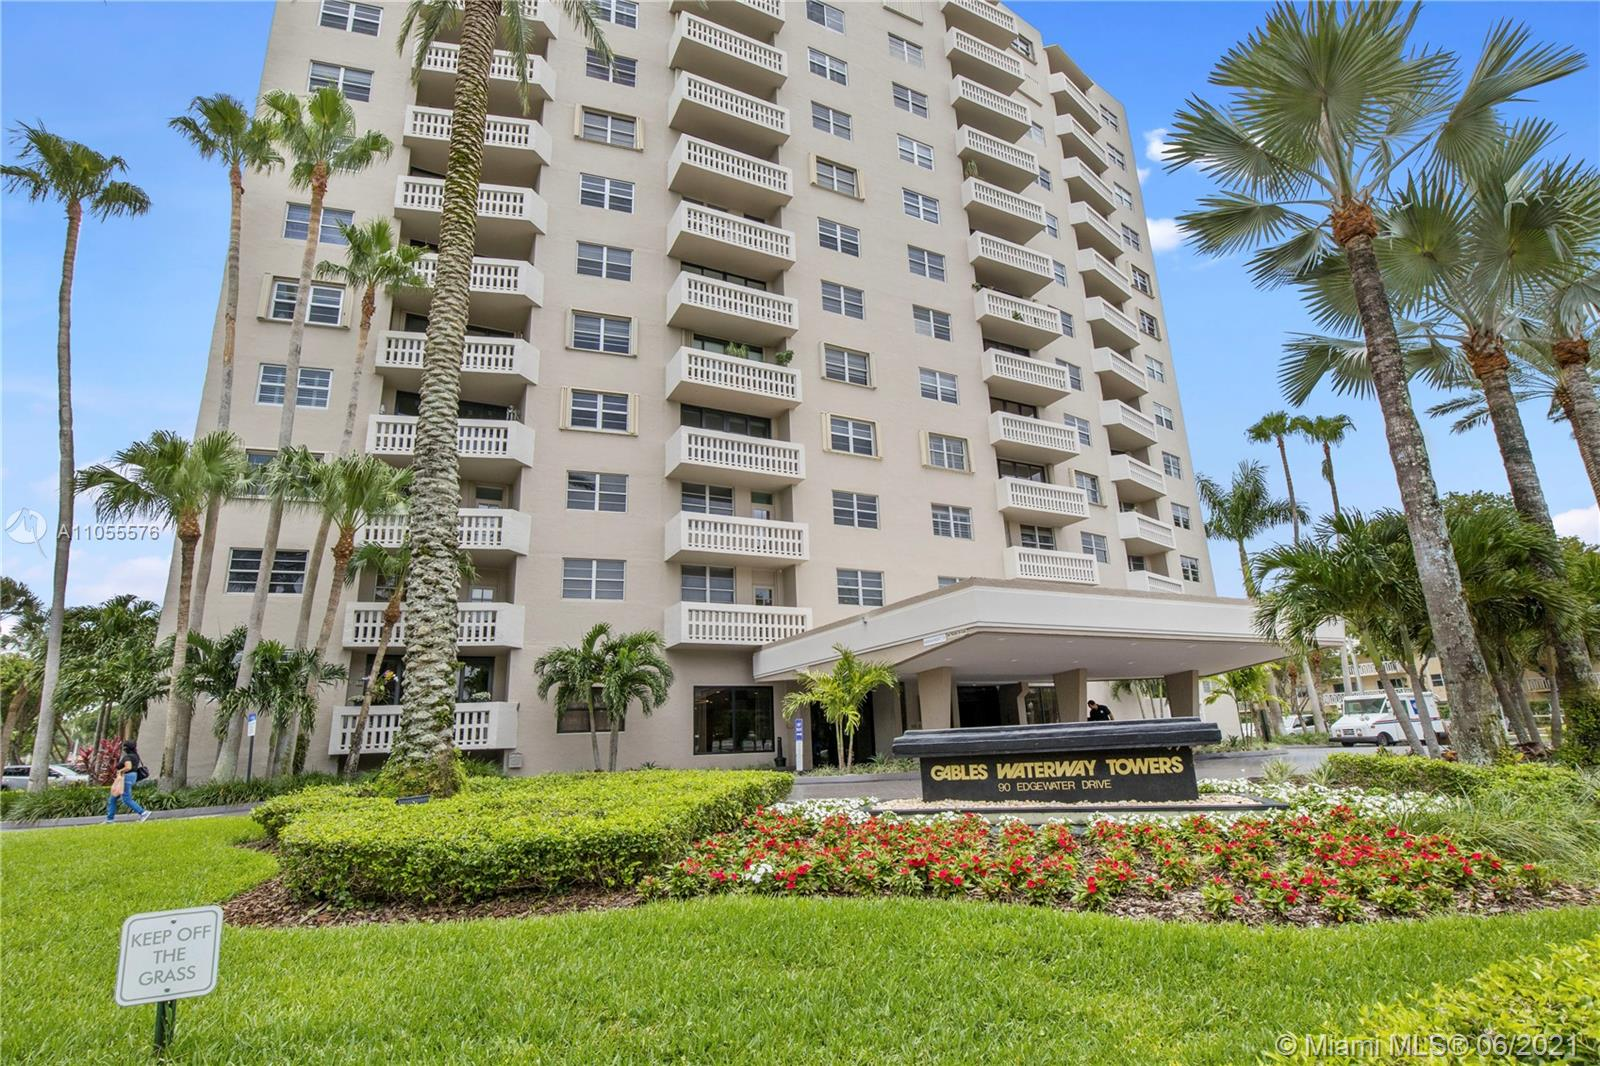 Gables Waterway #818 - 90 Edgewater Dr #818, Coral Gables, FL 33133